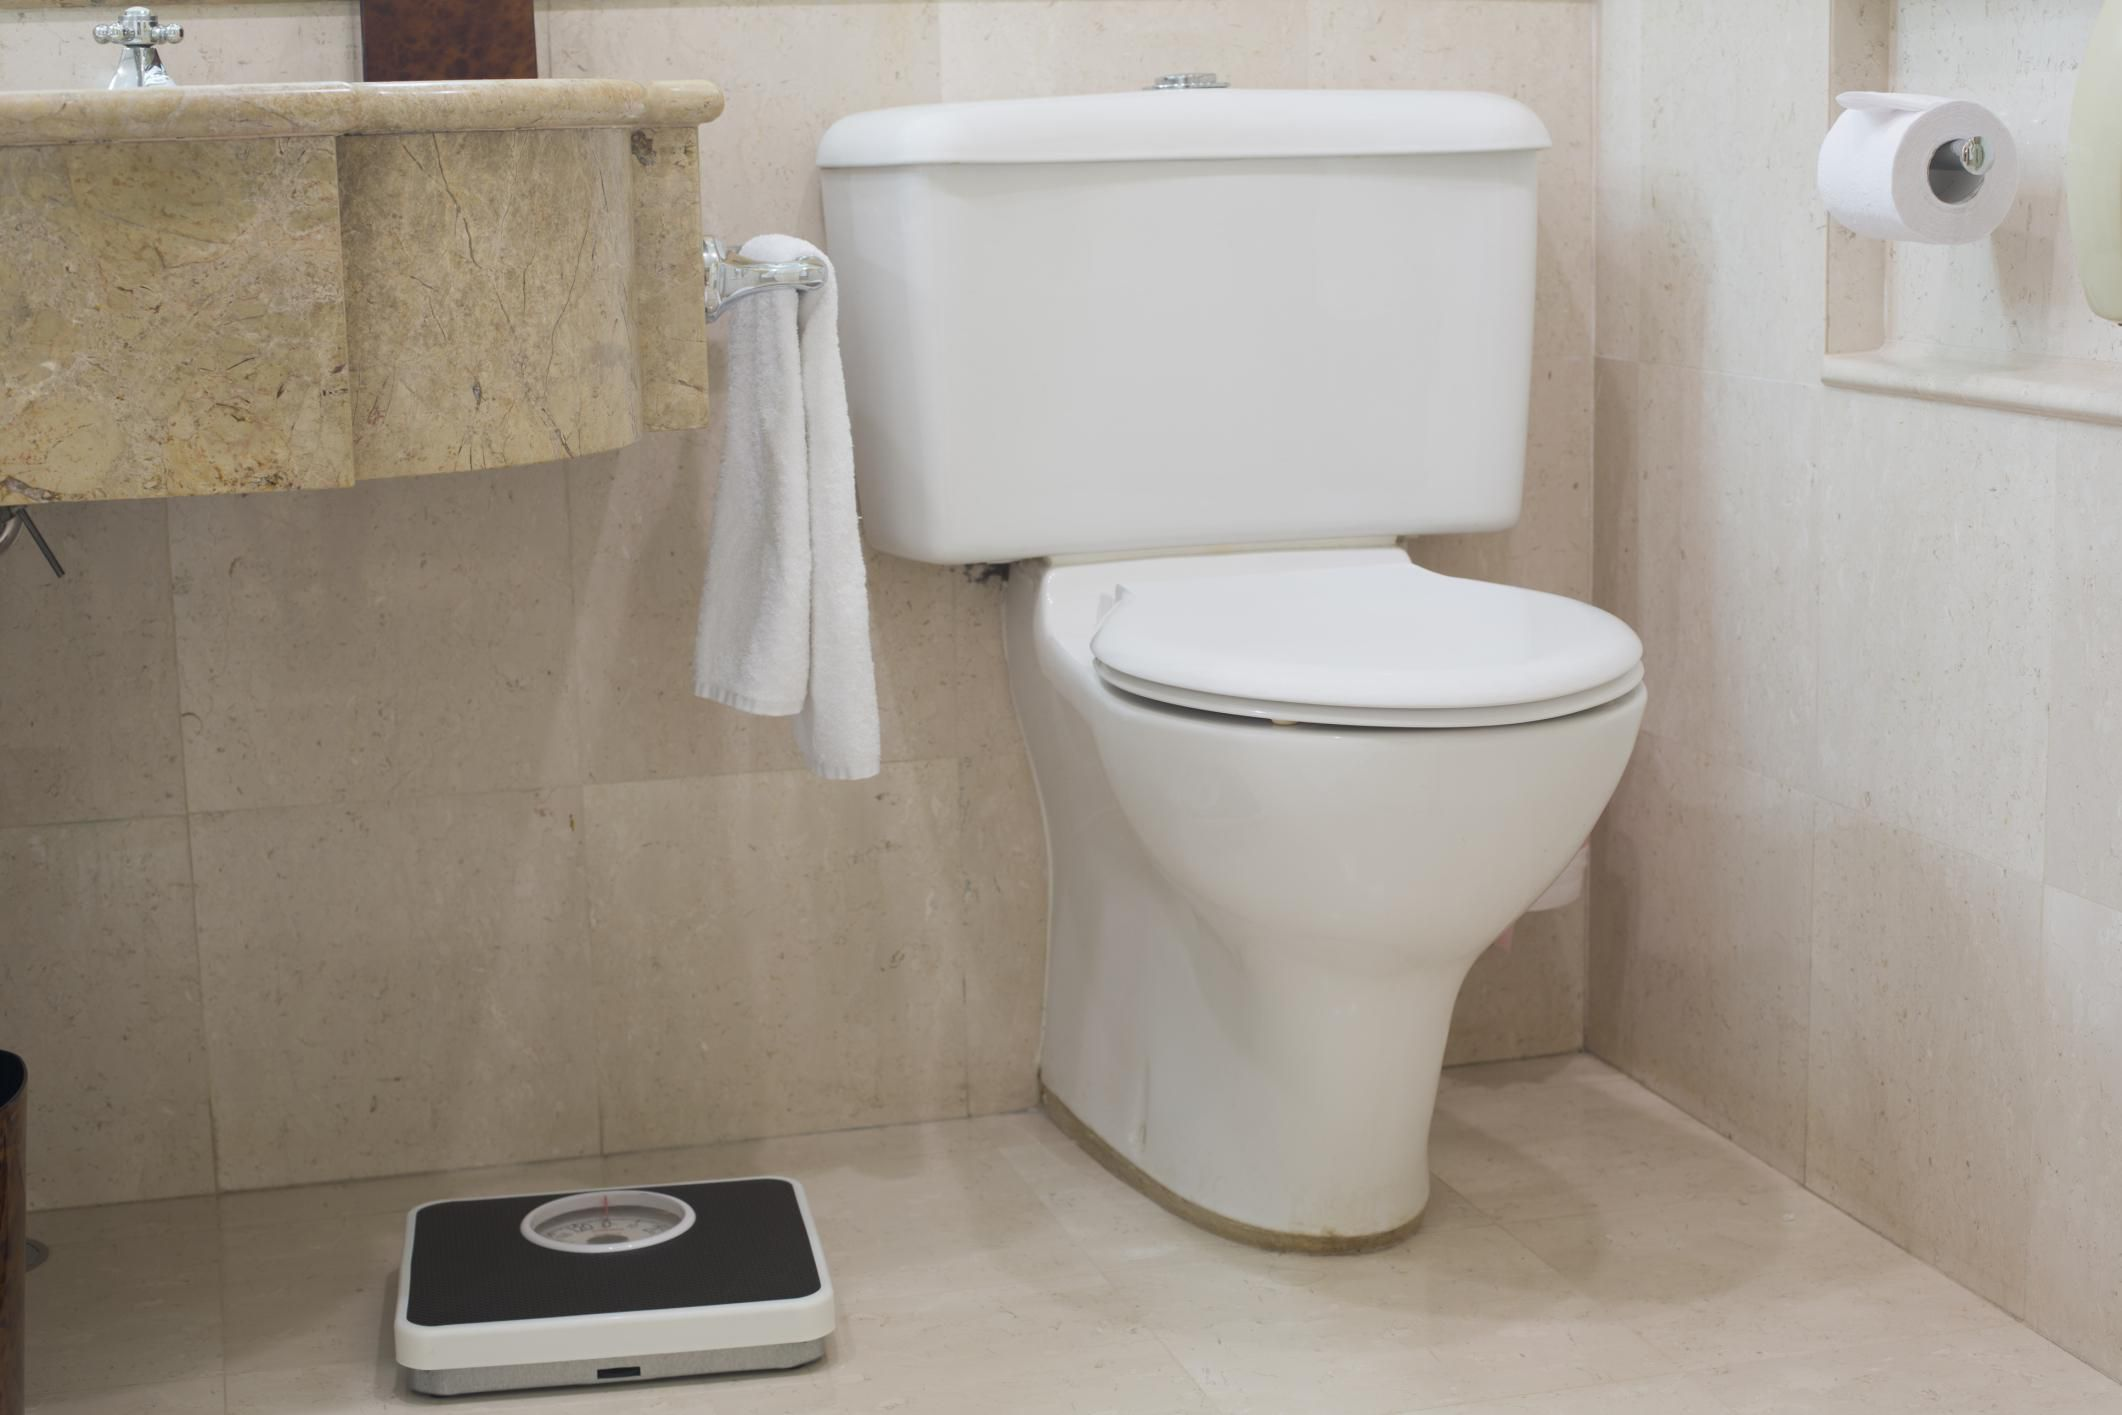 How Do You Know When It\'s Time to Replace a Toilet?